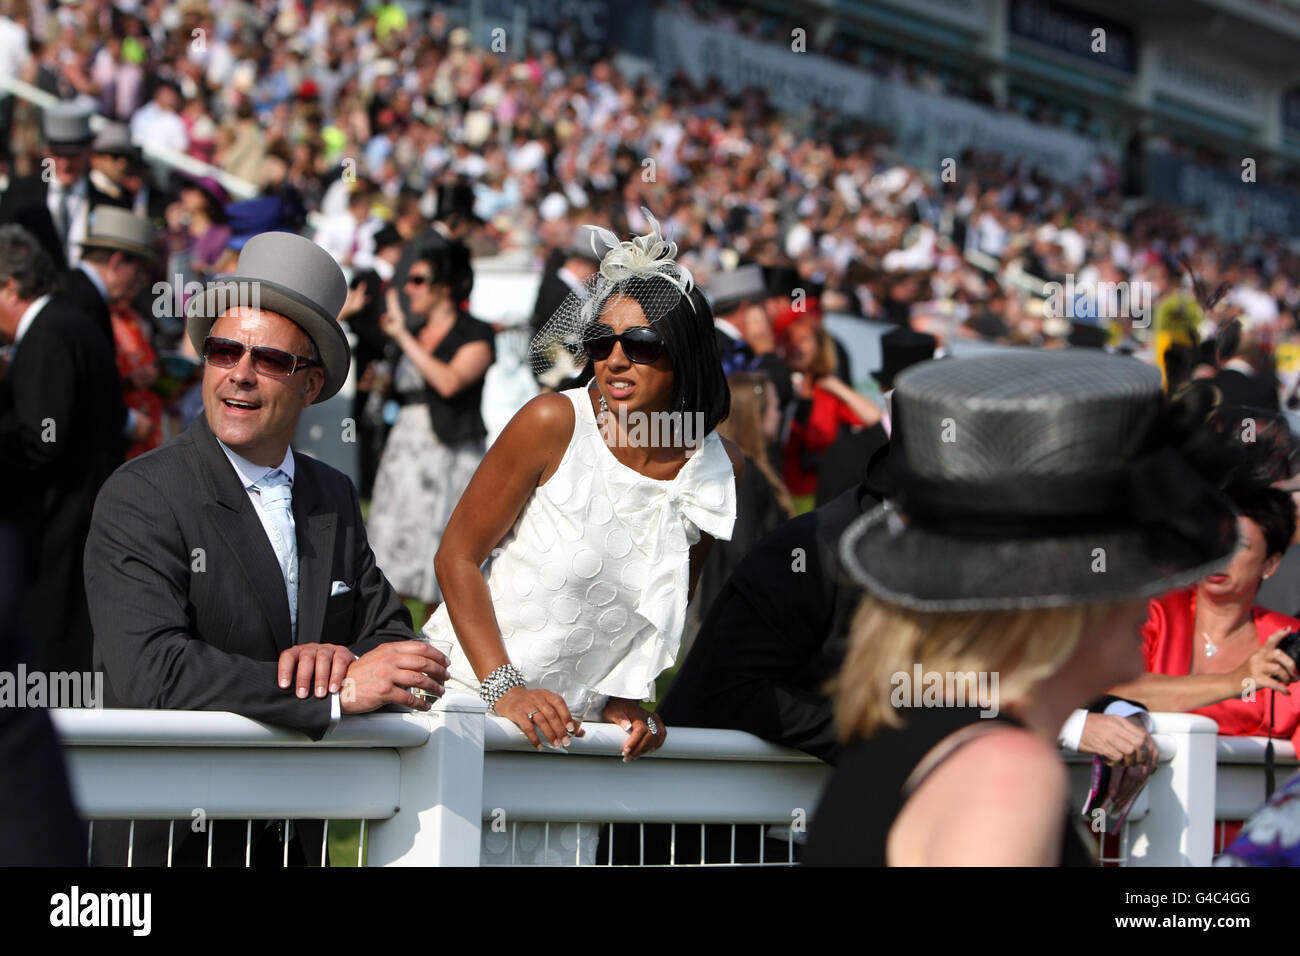 Race goers at the Investec Derby Day at Epsom racecourse in Surrey . - Stock Image